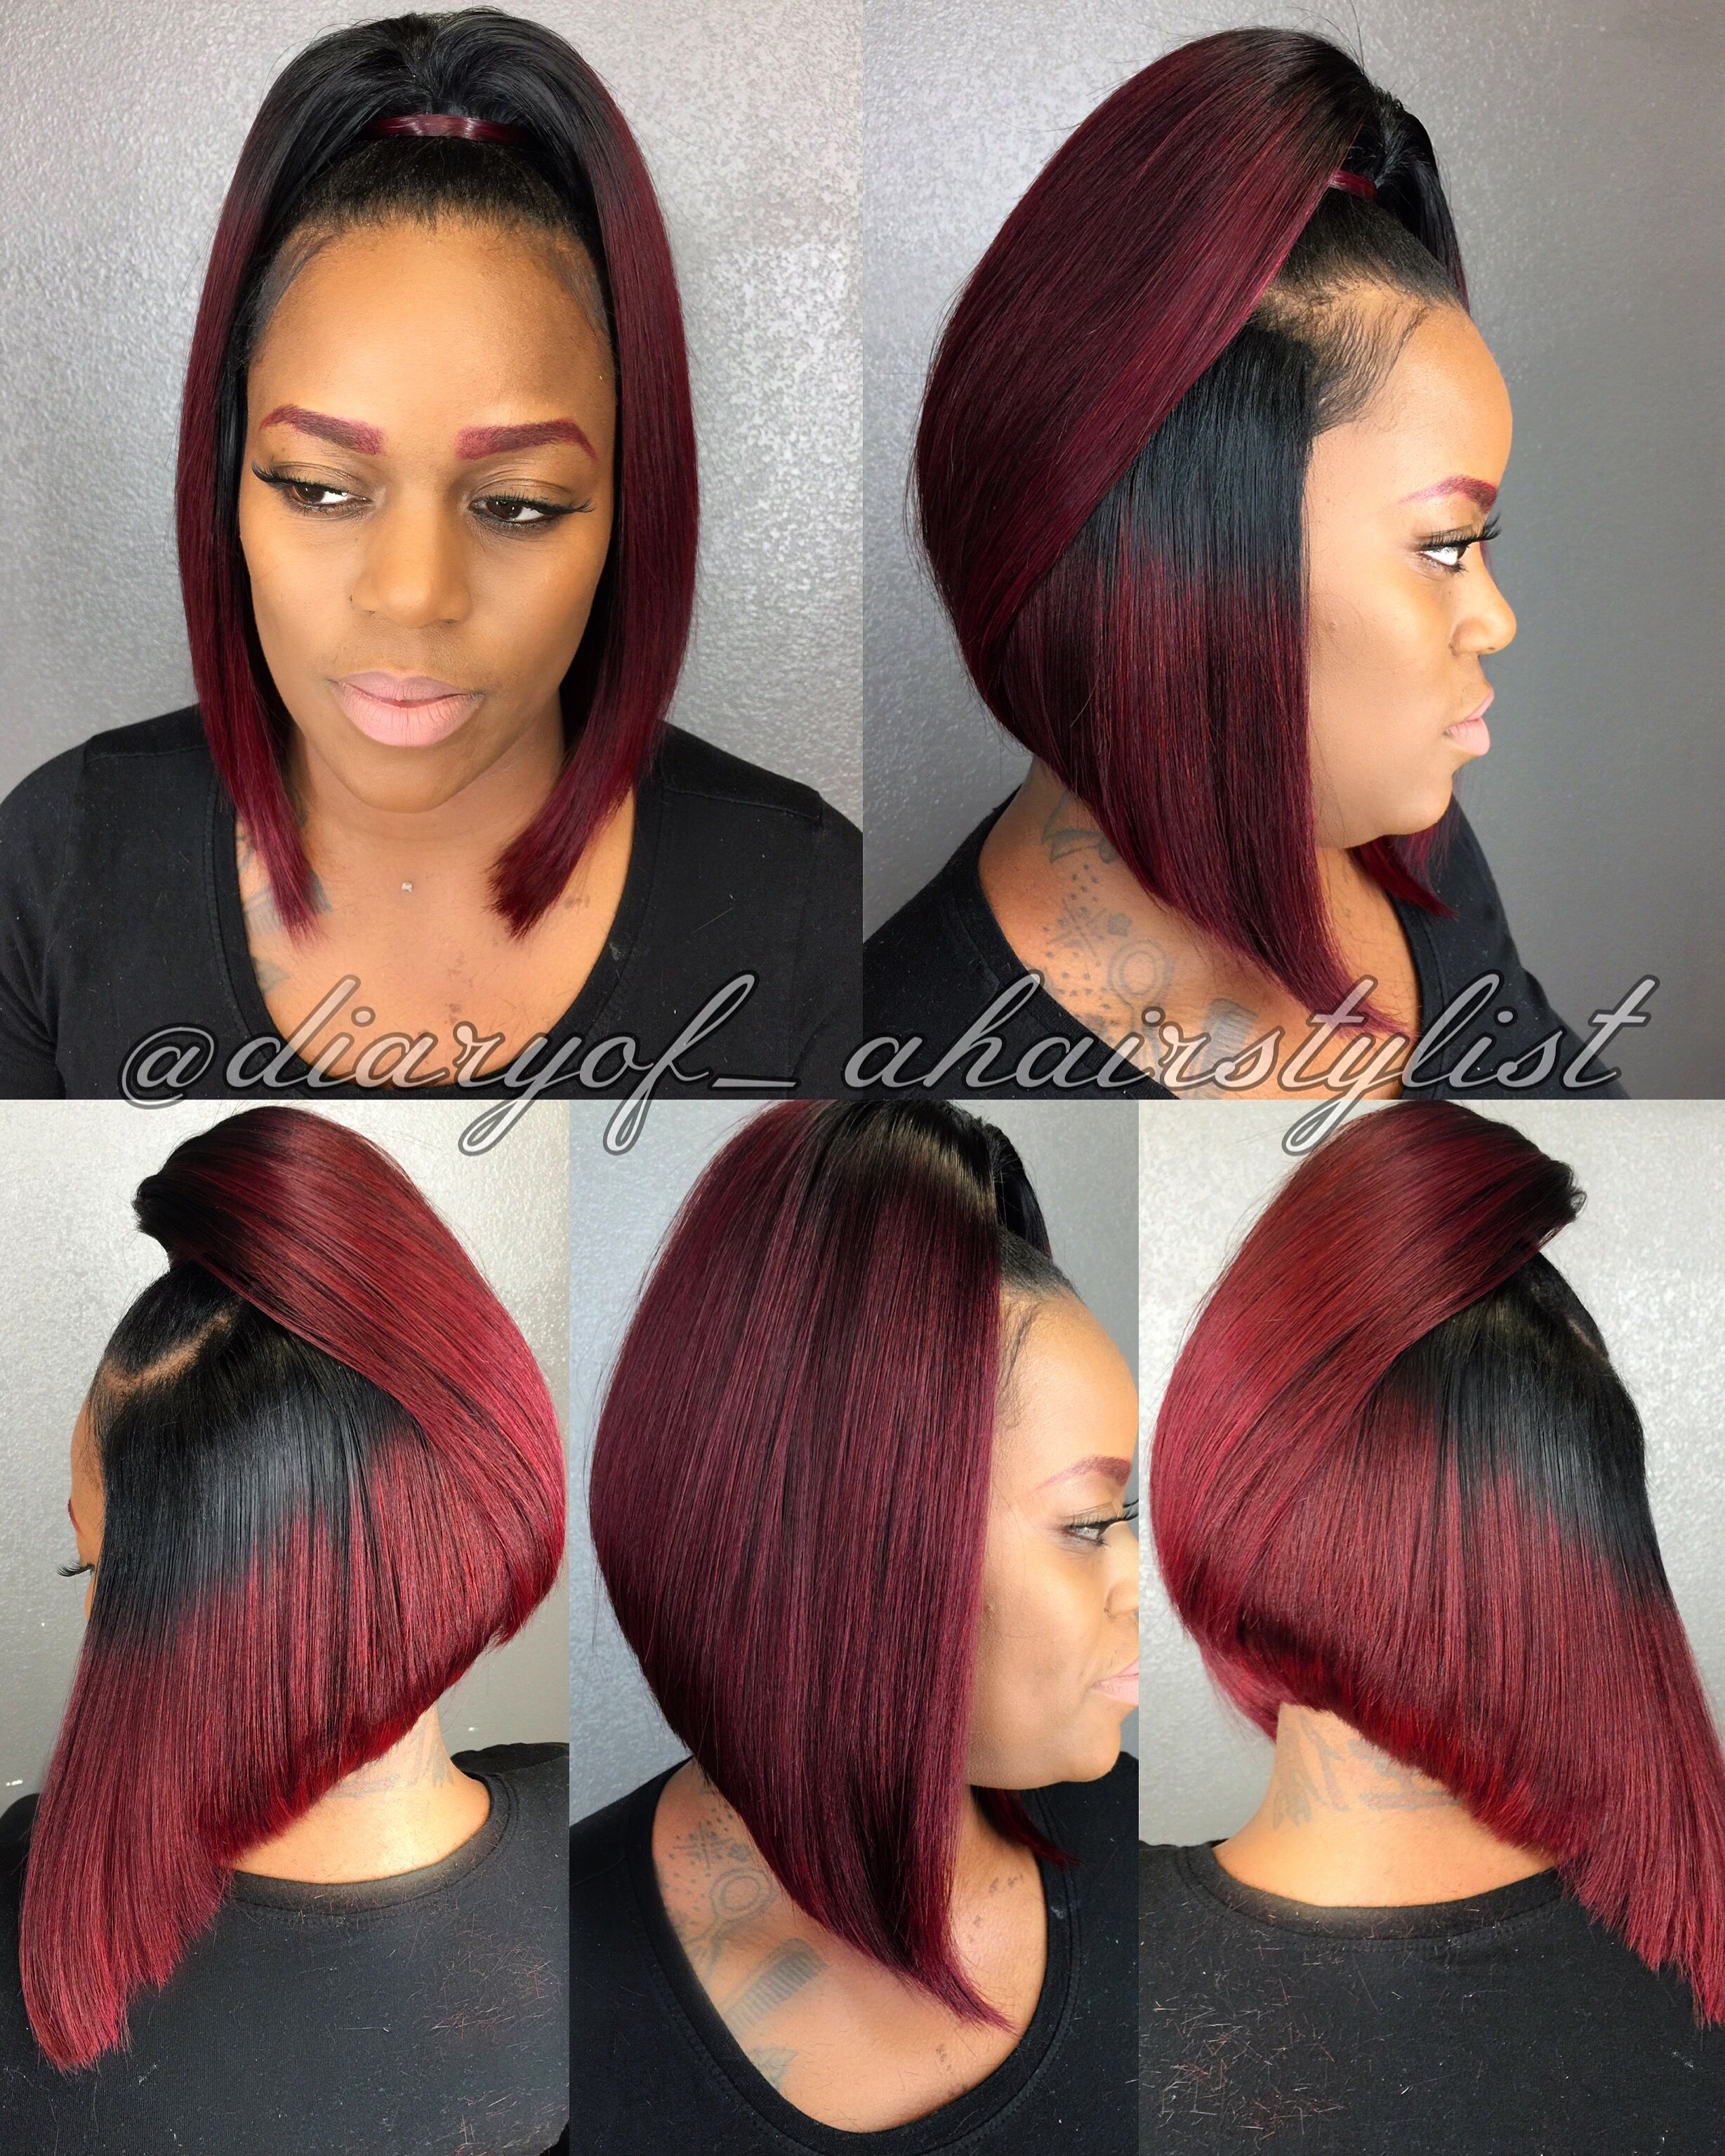 Ponytail Bob 2 In 1 Hairstyle Follow Me On Ig Diaryof Ahairstylist Quick Weave Hairstyles Weave Ponytail Hairstyles Stylish Hair